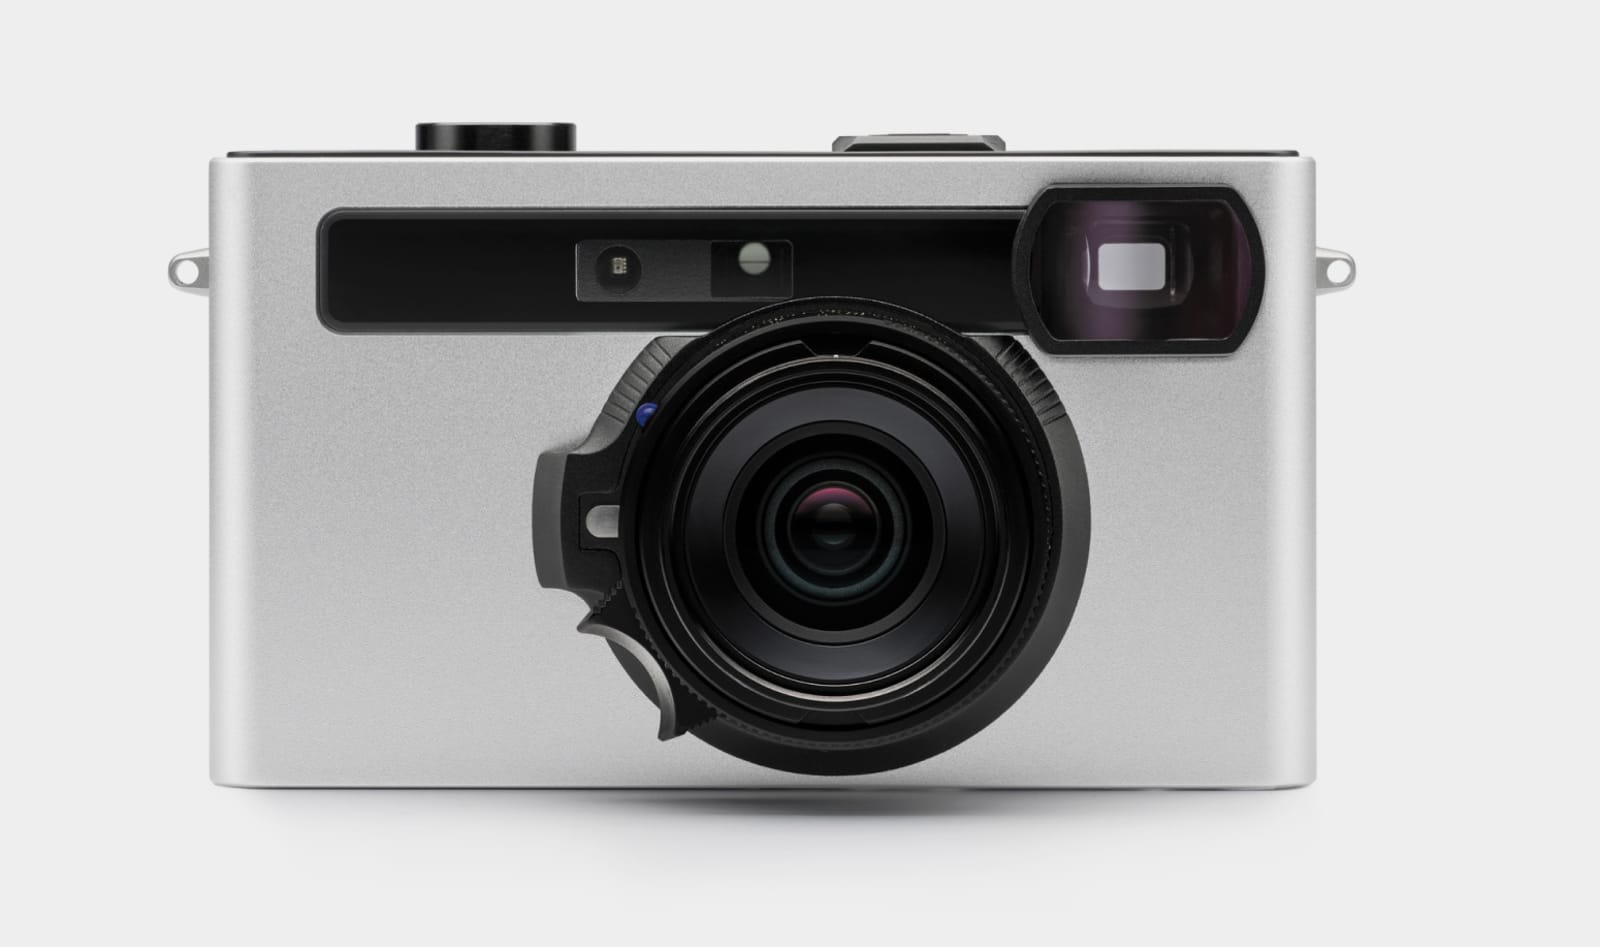 Pixii is a smartphone-centric rangefinder camera with a